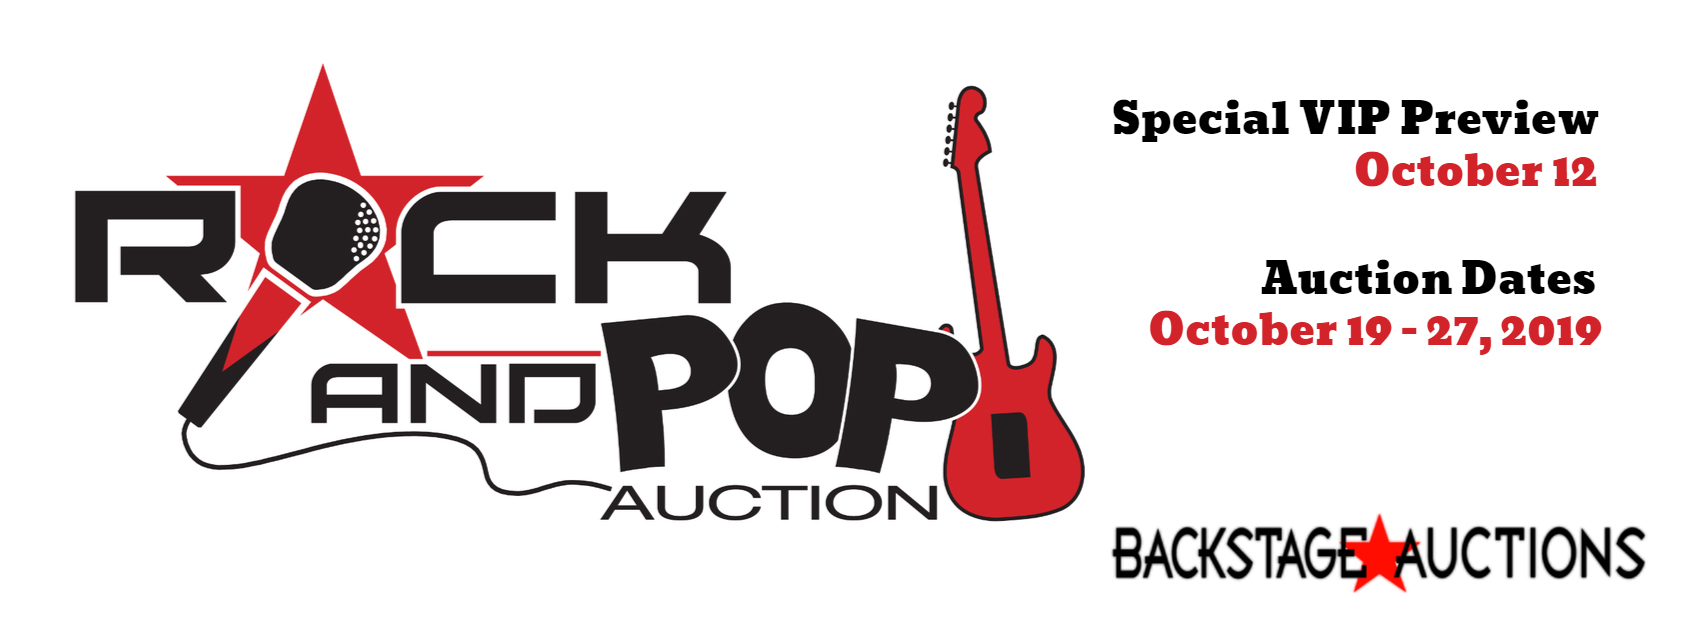 The Rock and Pop 2019 Auction